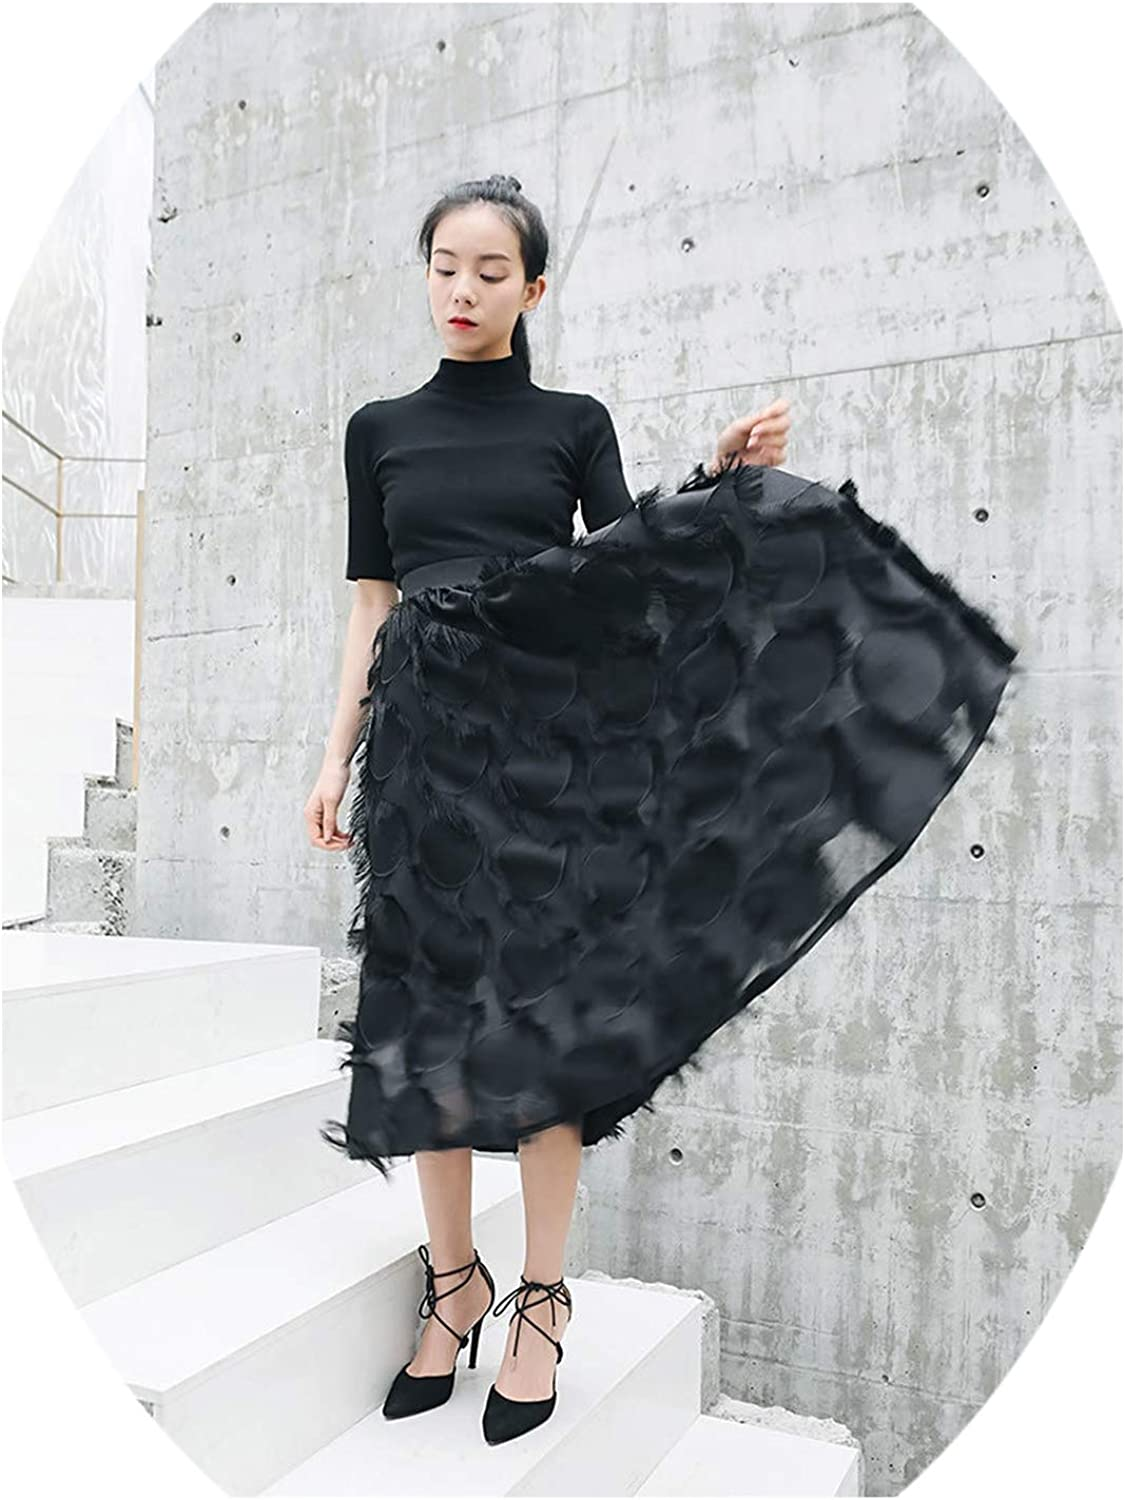 Try My Best dress Women Summer Fashion ONeck Short Sleeve Slim Fit Top Female Solid color Elastic Waisted AnkleLength Skirt